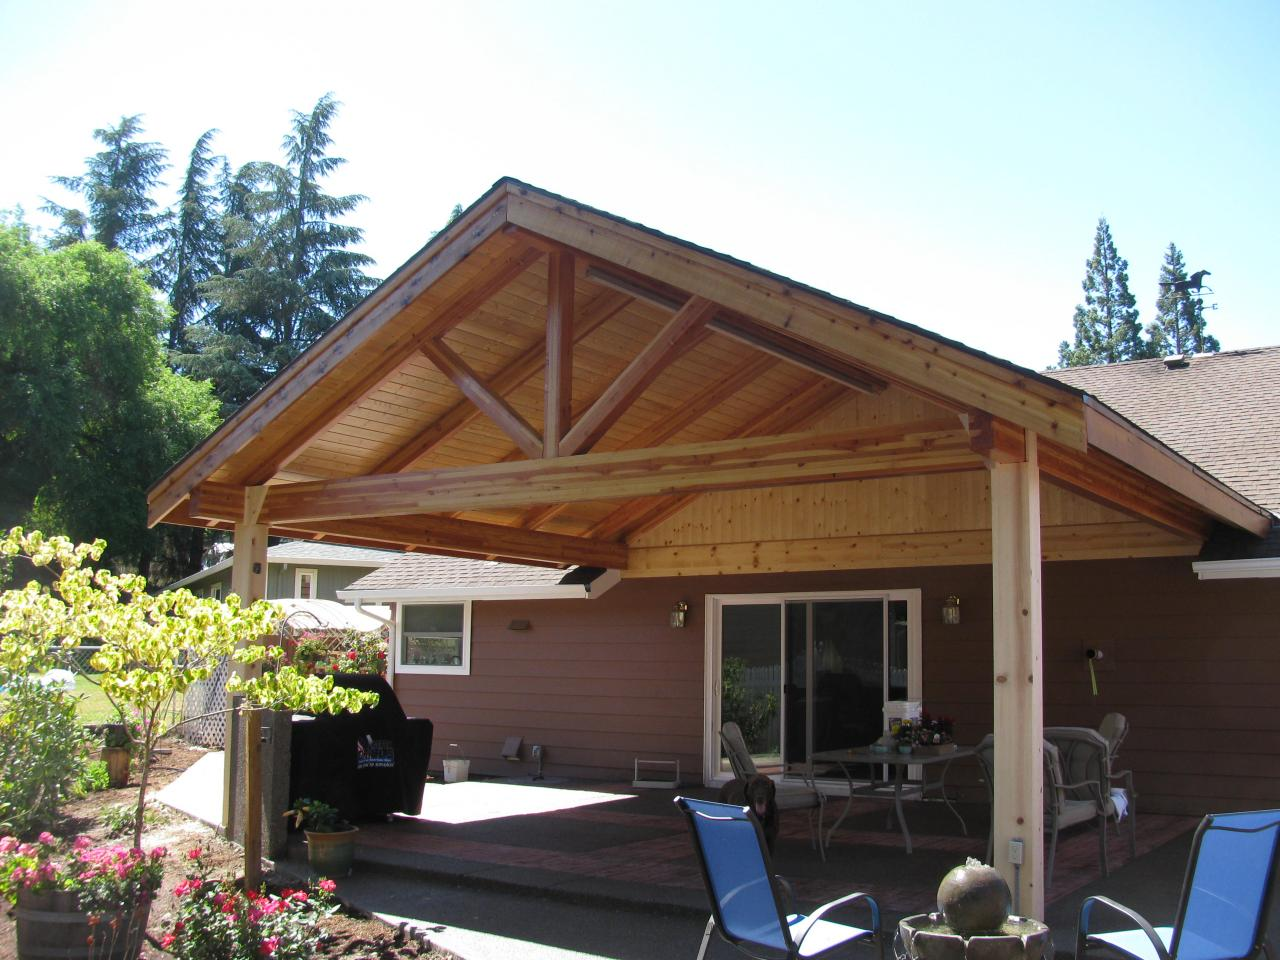 attached carport design ideas with Custom Patio Covers 5 on Best Garage Flooring Options furthermore Carports Gold Coast likewise Ranch House Style Defining Suburbs likewise Watch together with Top 20 Pergola Designs.